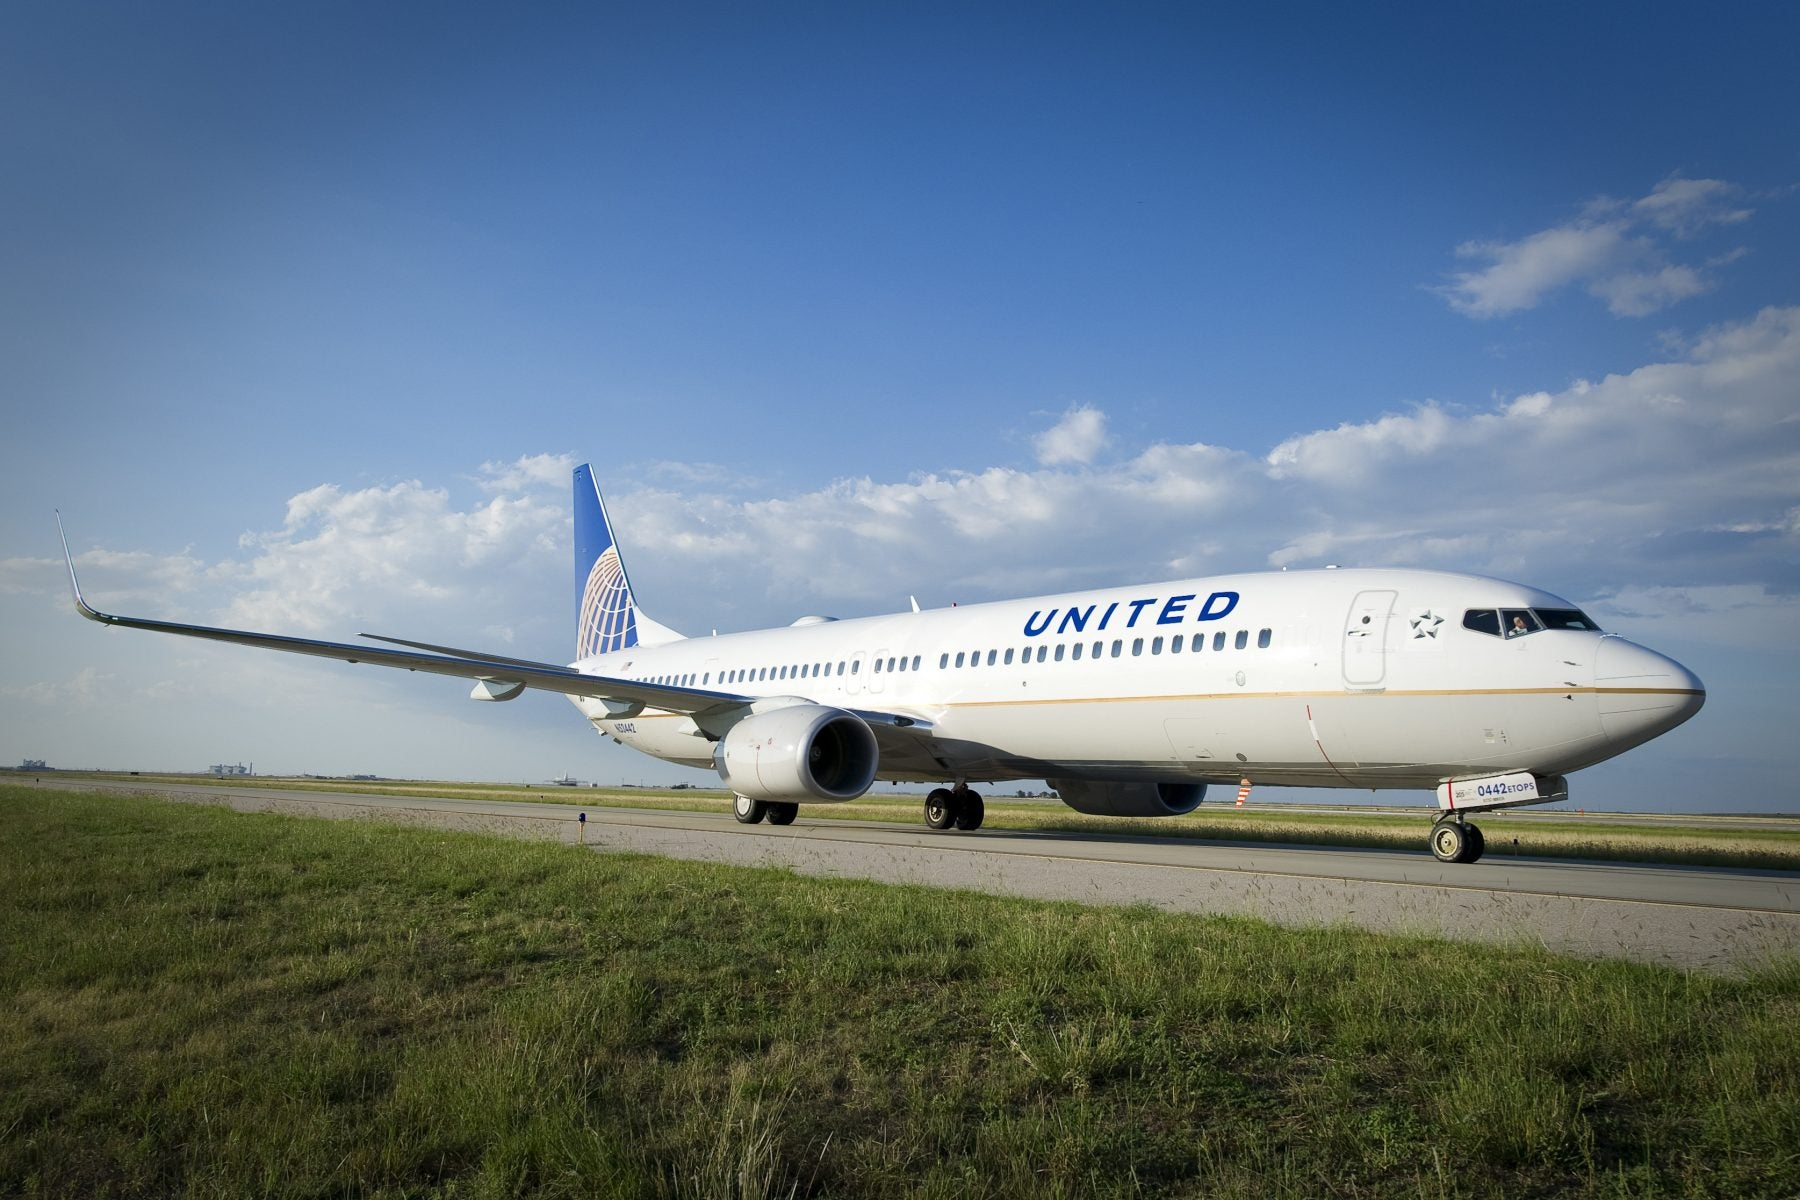 United Mileage Plus Review: How to Earn, Redeem, & Get the Most From the Program